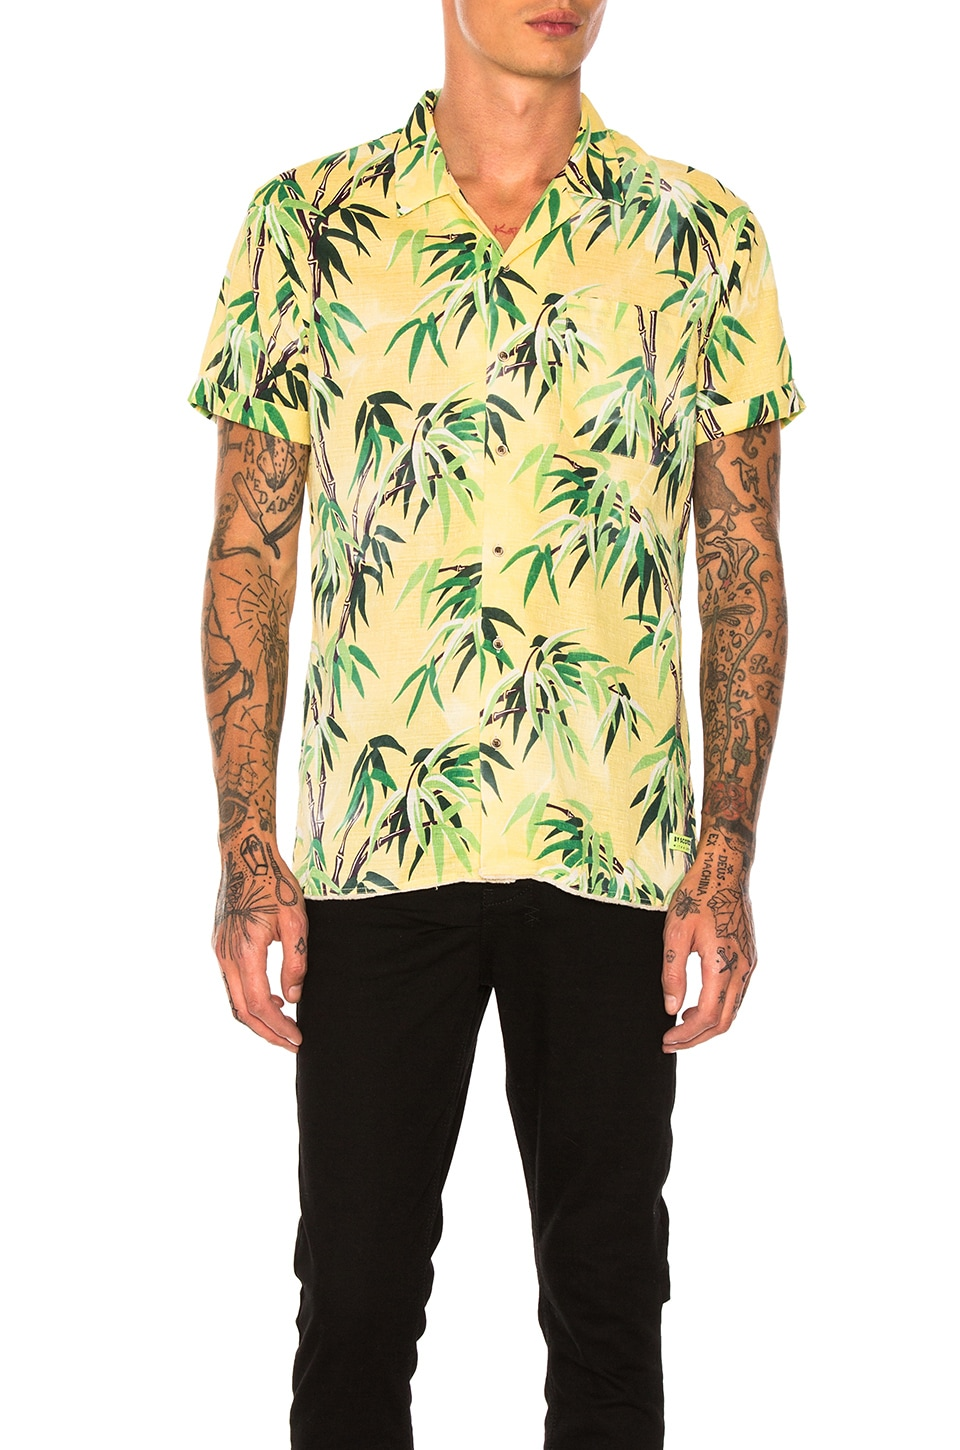 Short Sleeve Palm Tree Shirt by Scotch & Soda